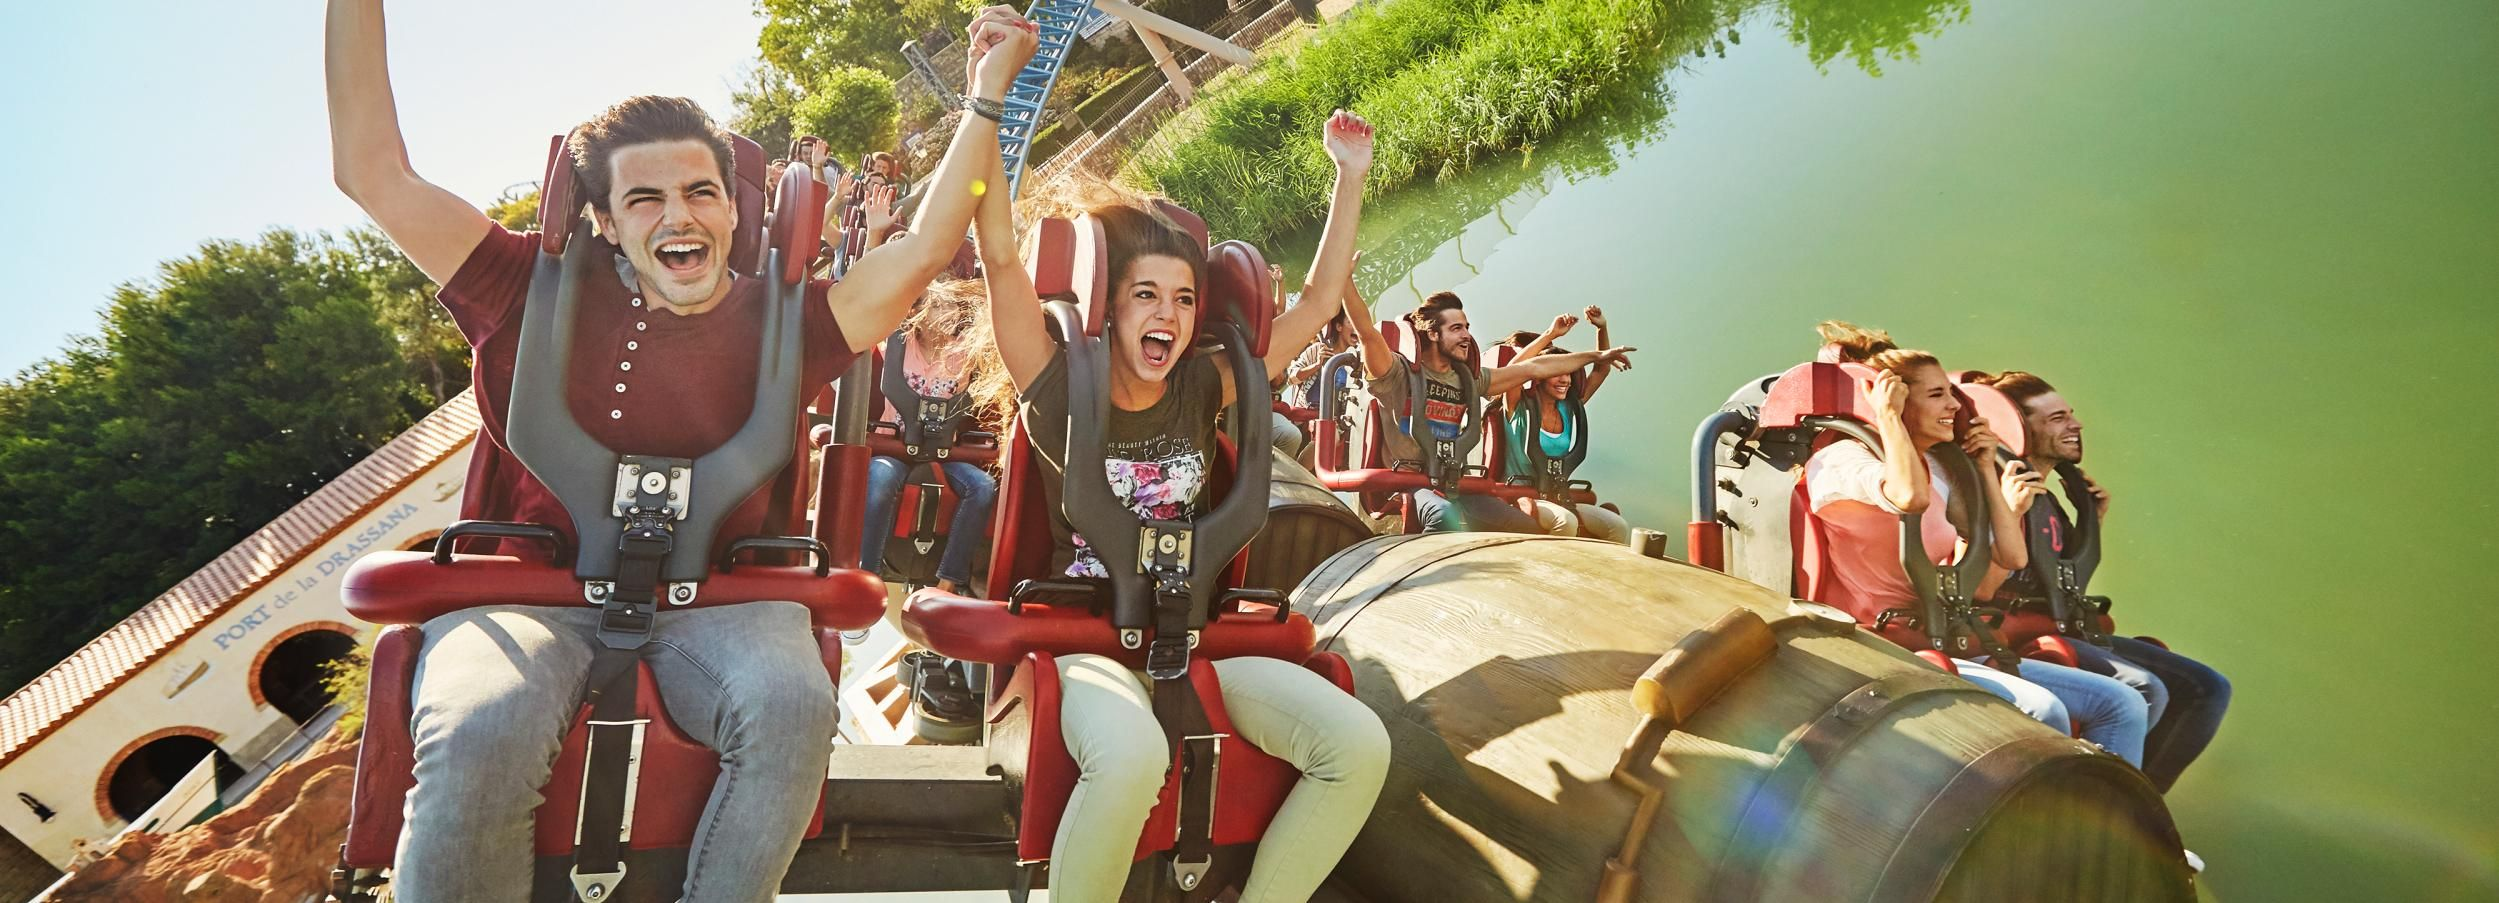 PortAventura & Ferrari Land Tickets: 1, 2, or 3-Day Entry